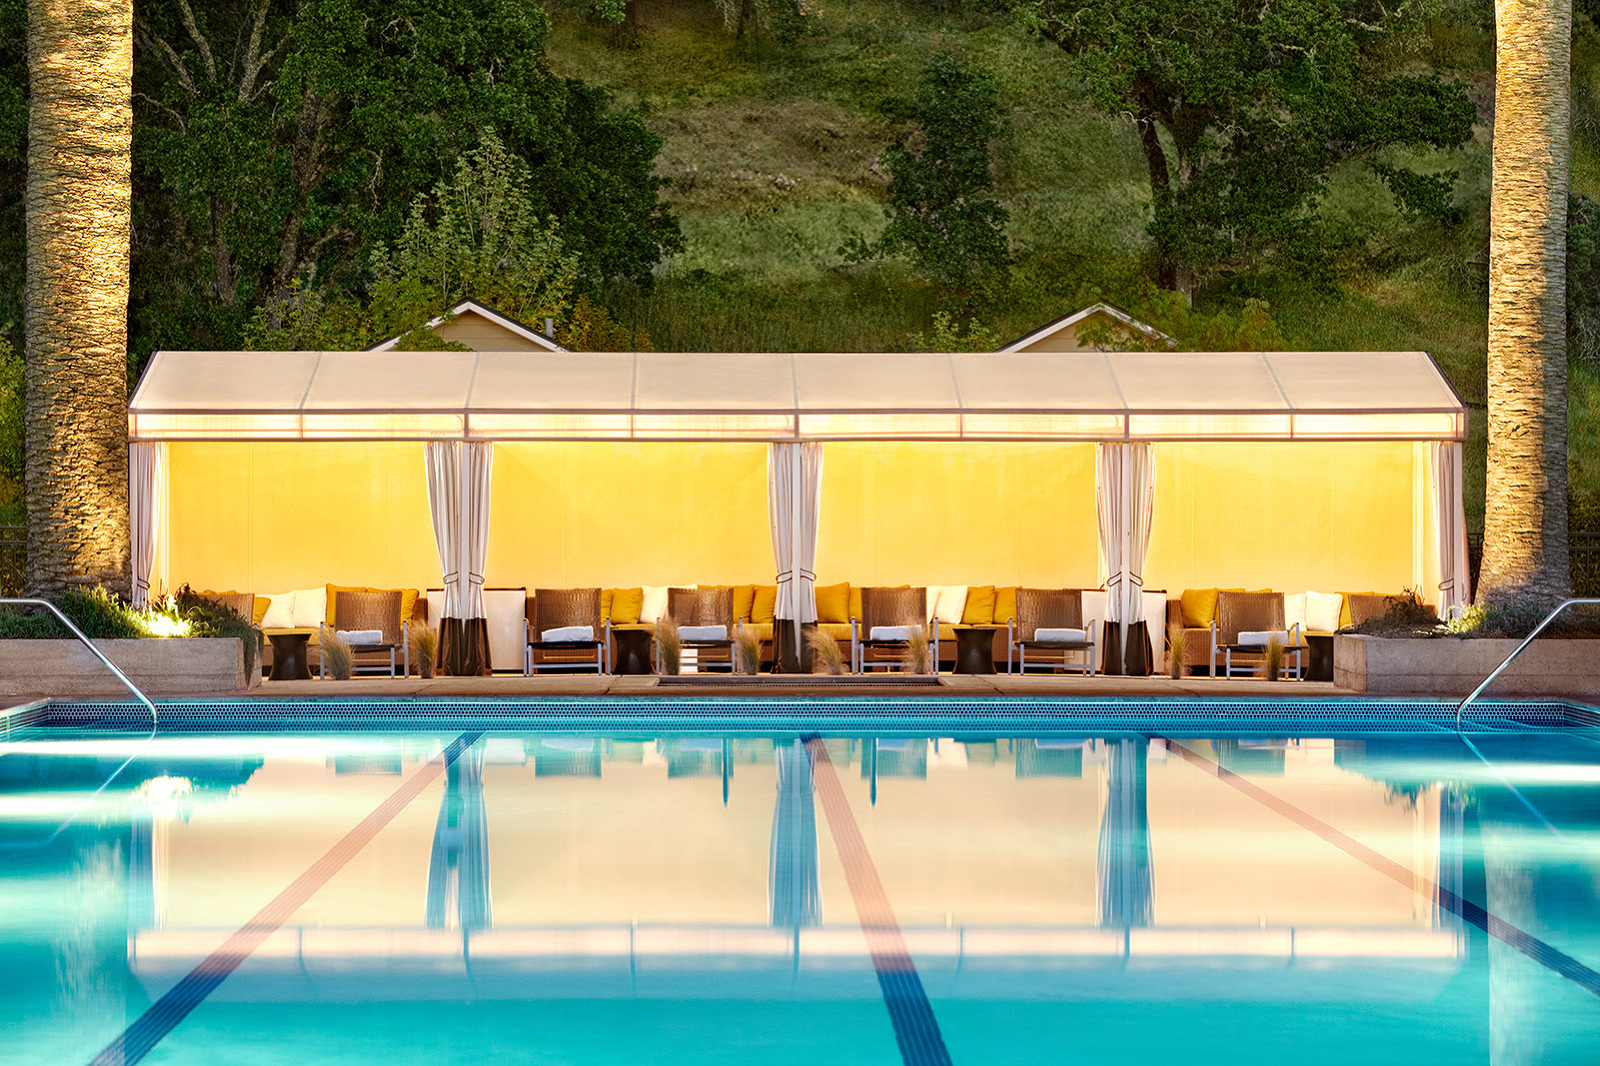 Pool Cabanas at Solage Calistoga, CA  | Trinette+Chris Photographers